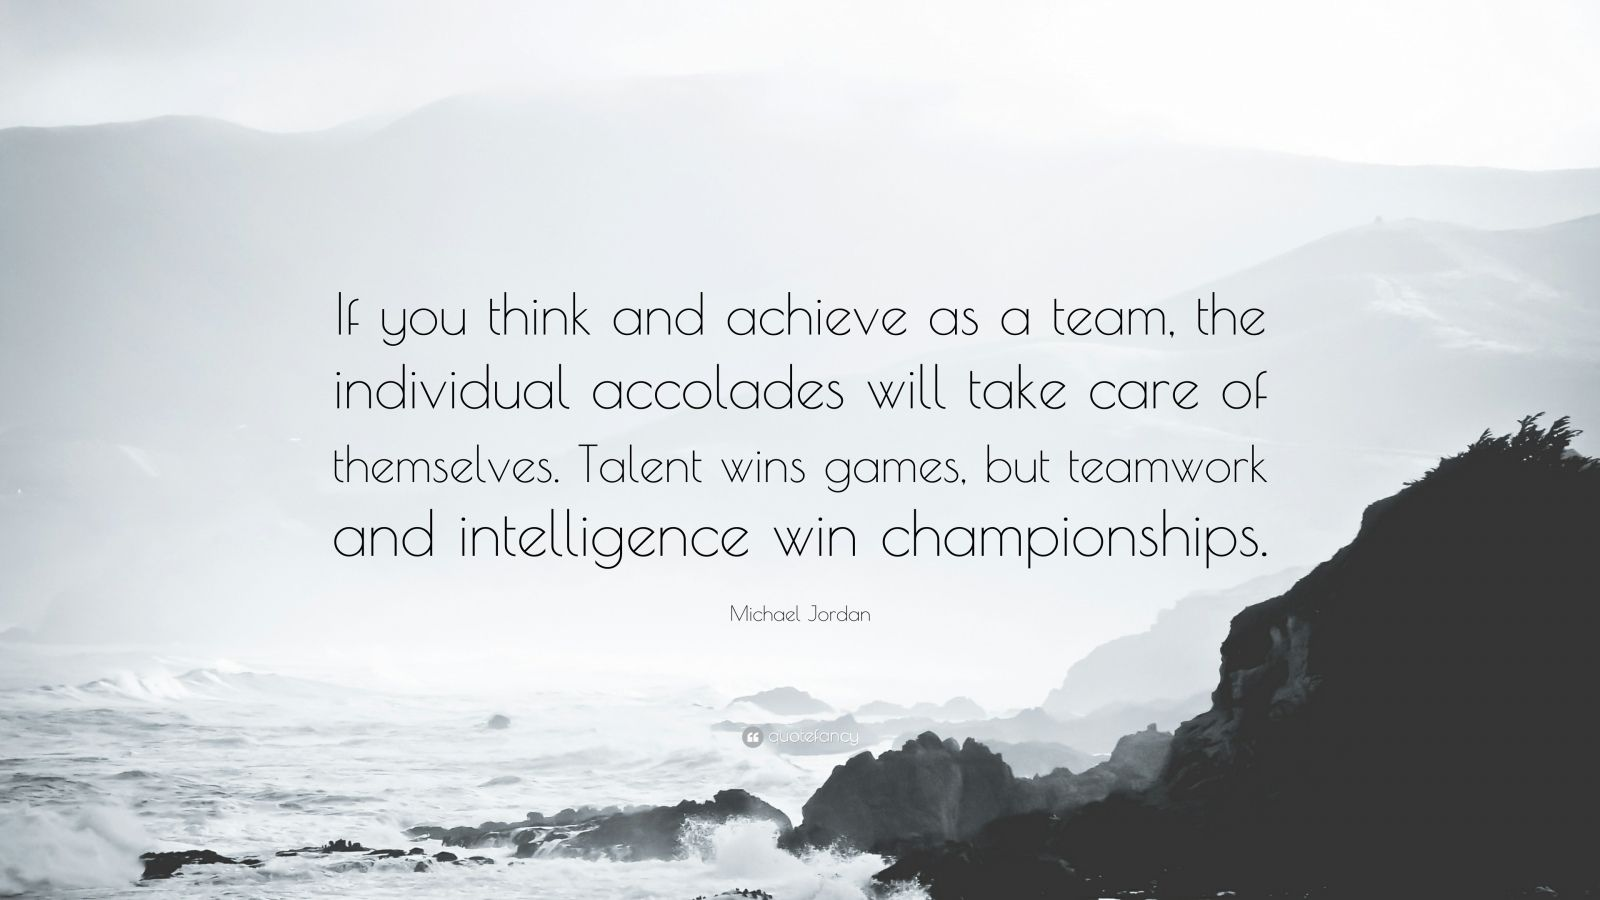 """Michael Jordan Quote: """"If you think and achieve as a team, the individual accolades will take care of themselves. Talent wins games, but teamwork and intelligence win championships."""""""